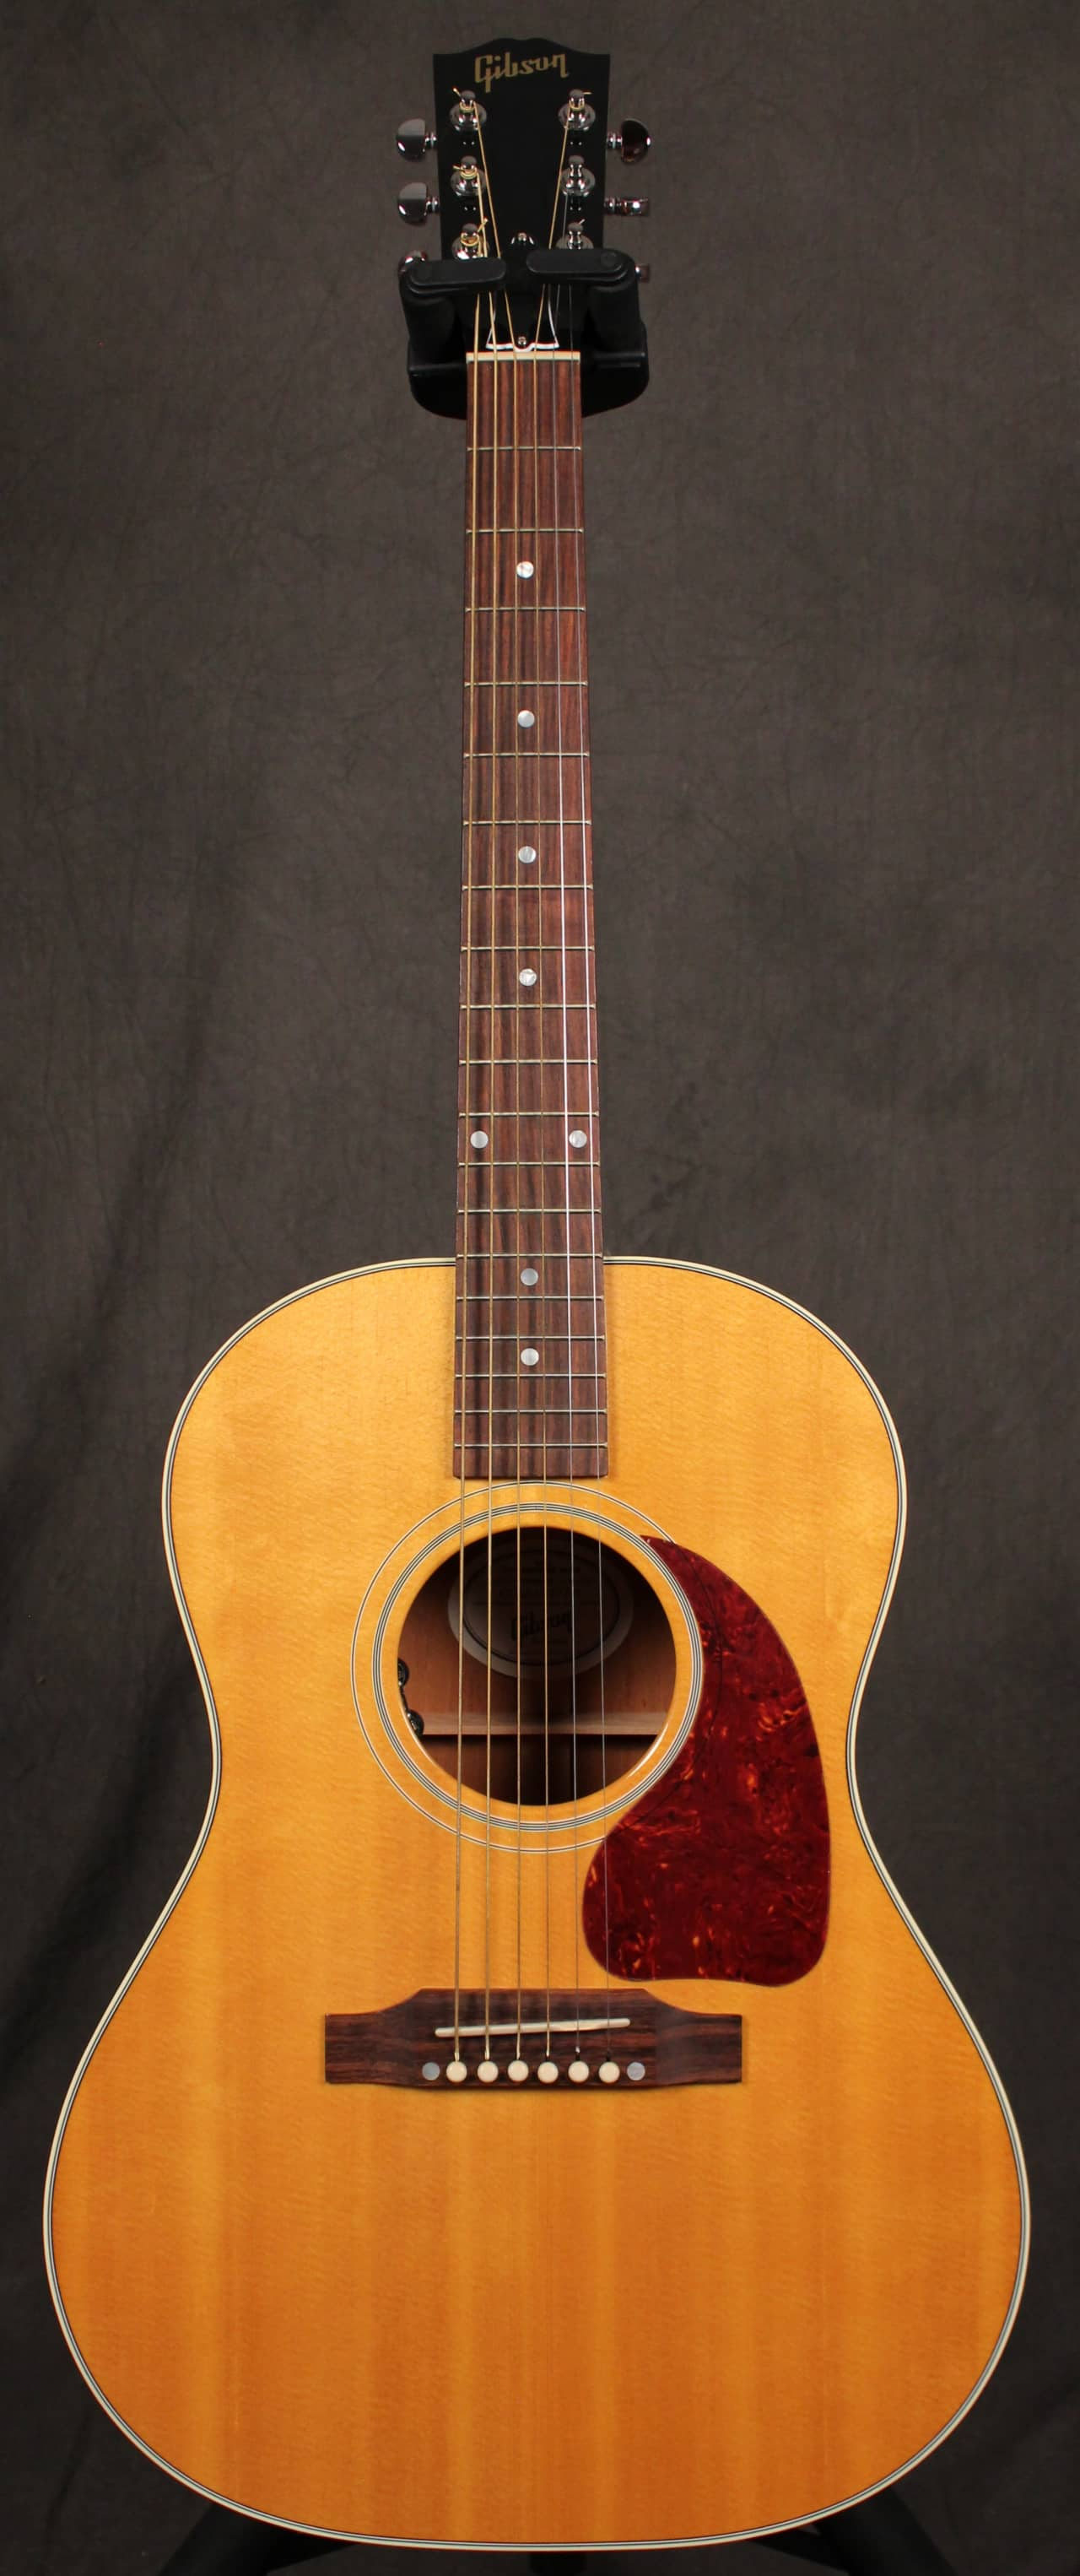 Gibson LG-2 American Eagle Acoustic Guitar | Swing City ...